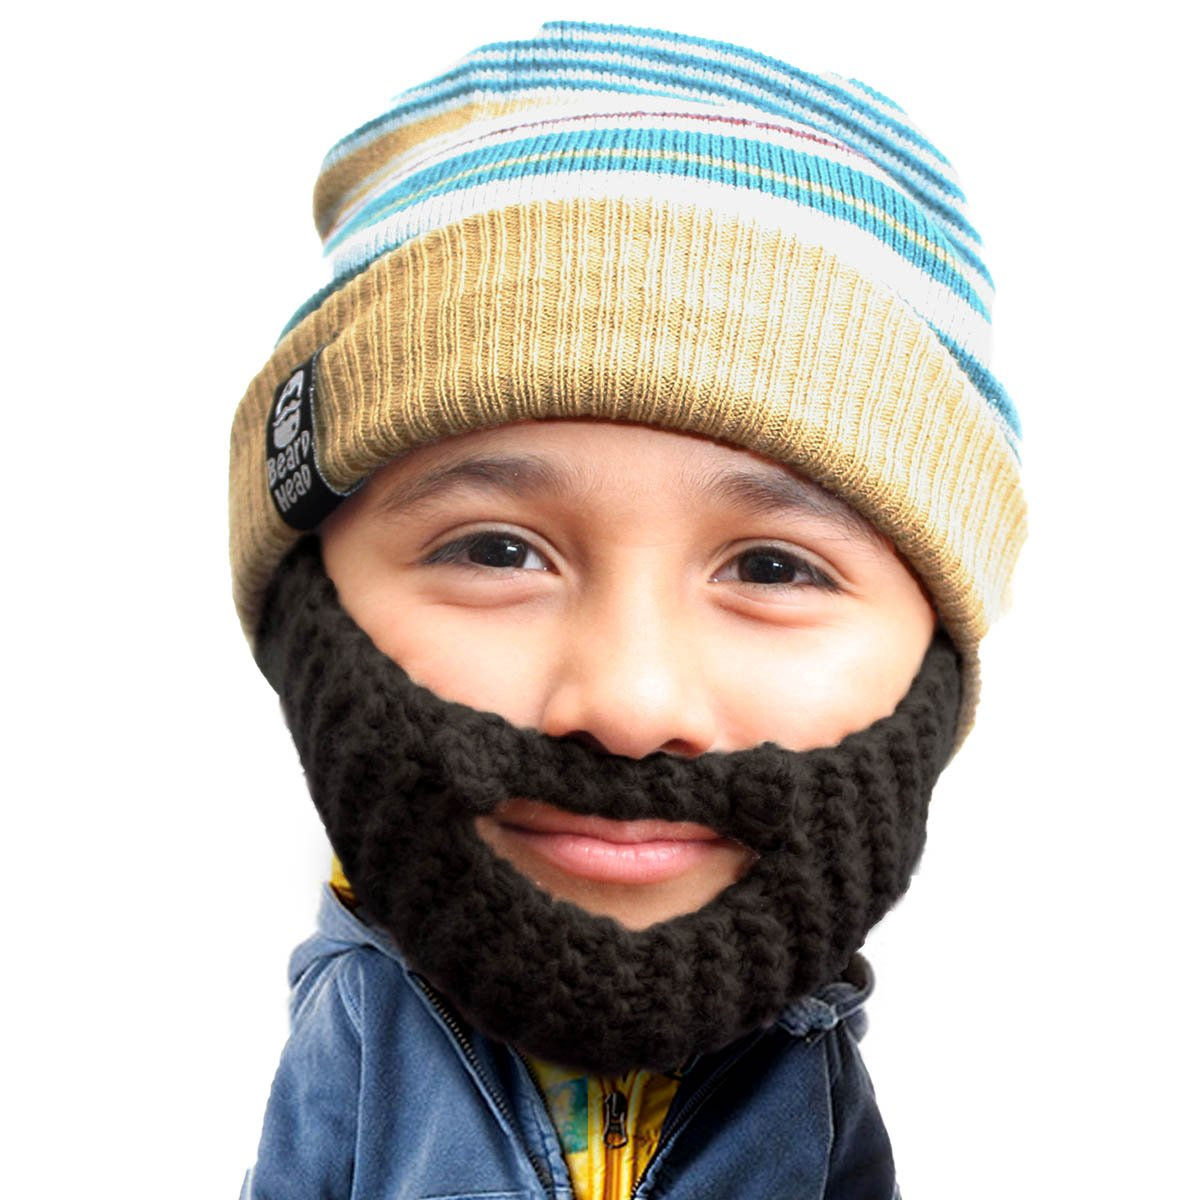 Amazon.com  Beard Head Kid Roro Beard Beanie - Knit Hat and Fake Beard for  Kids and Toddlers Black  Clothing 9743b64b4e6